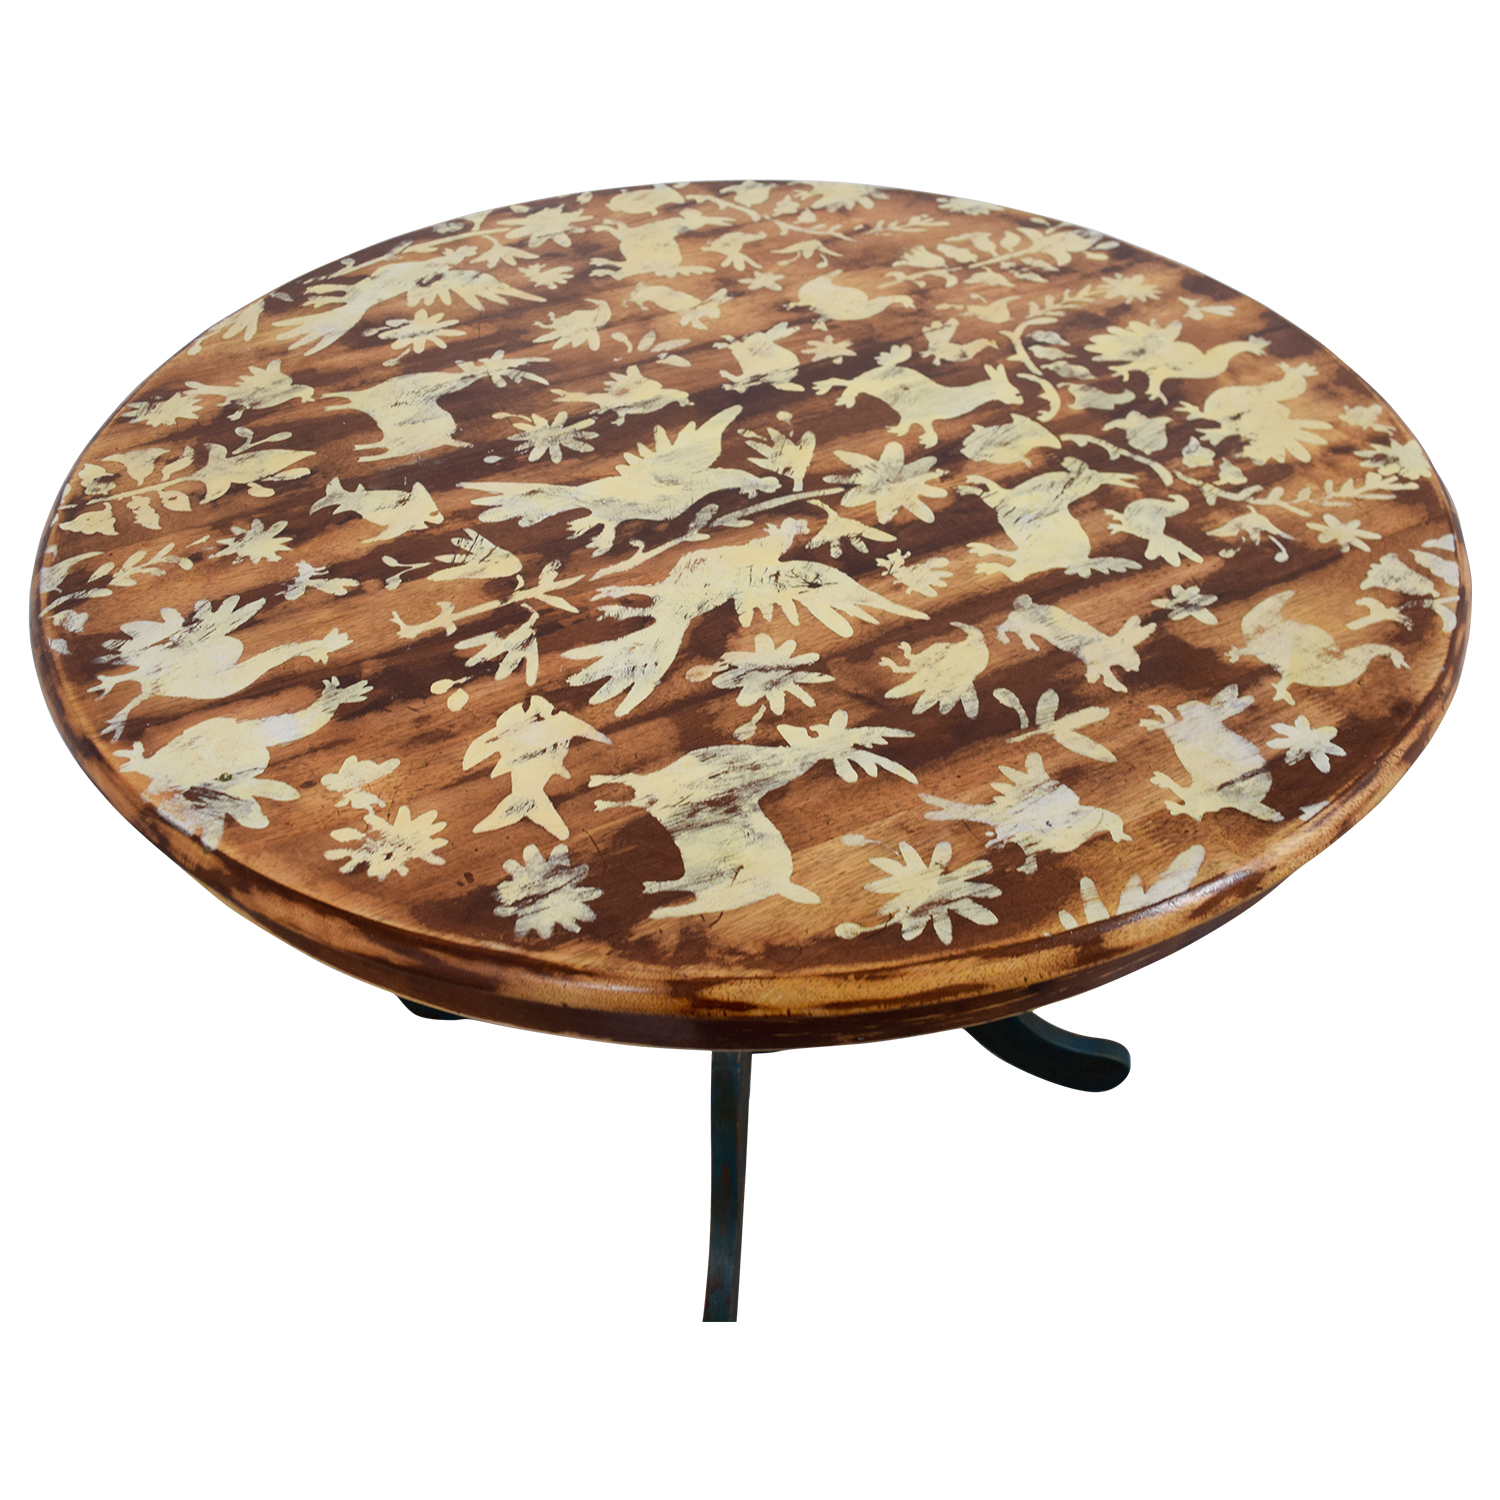 Vintage Hand-Stenciled Farmhouse Style Round Kitchen Table for sale